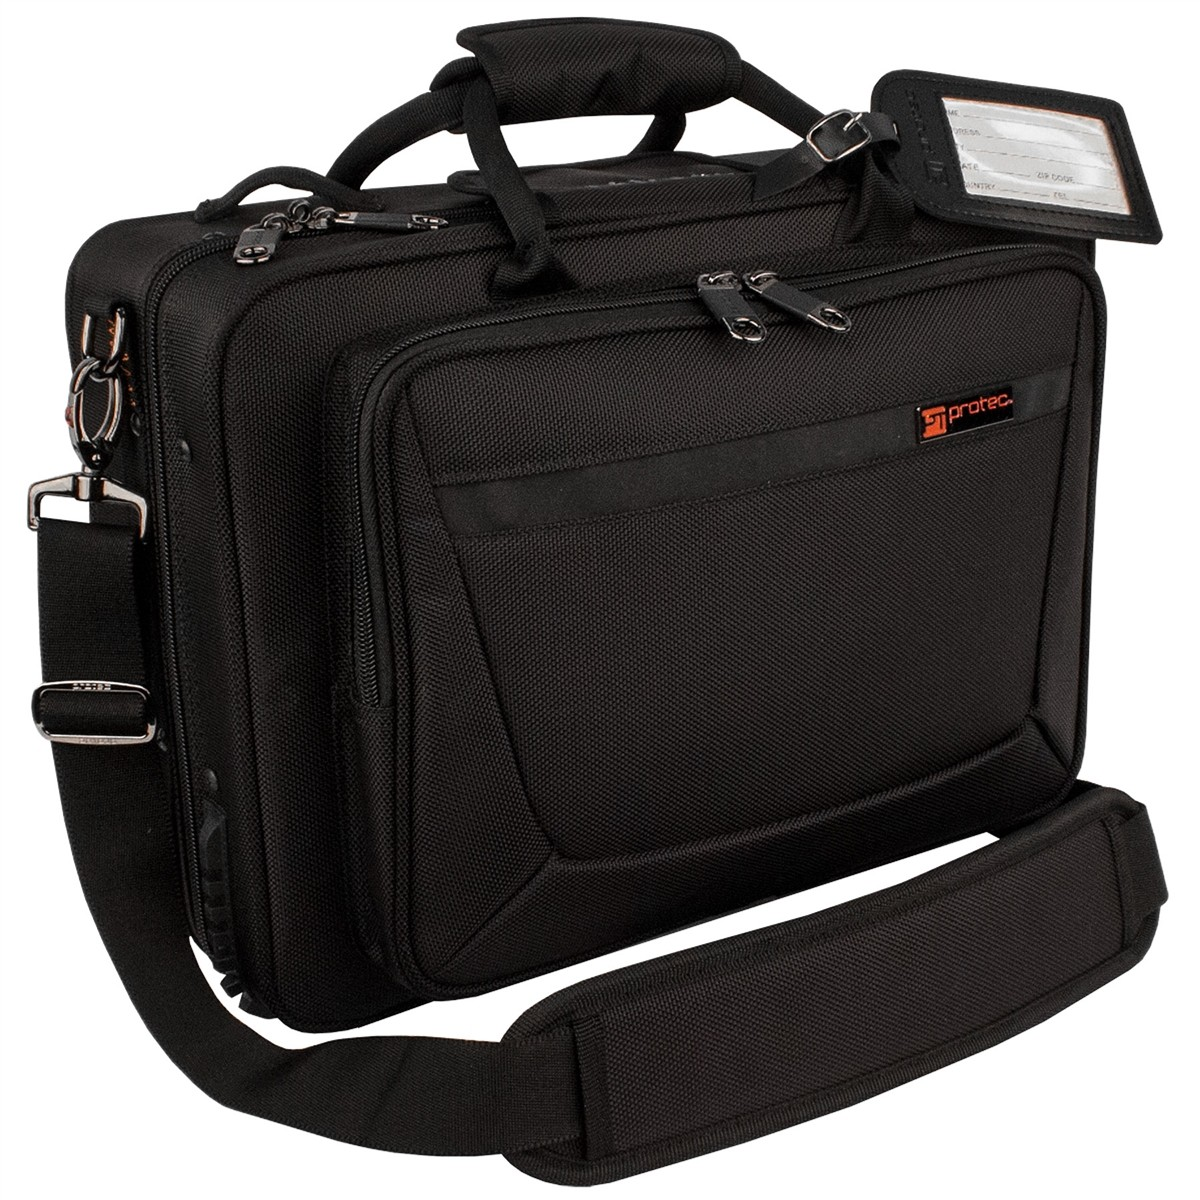 Protec Bb Clarinet PRO PAC Case - Carry All with Built In Sheet Music Compartment (PB307CA)